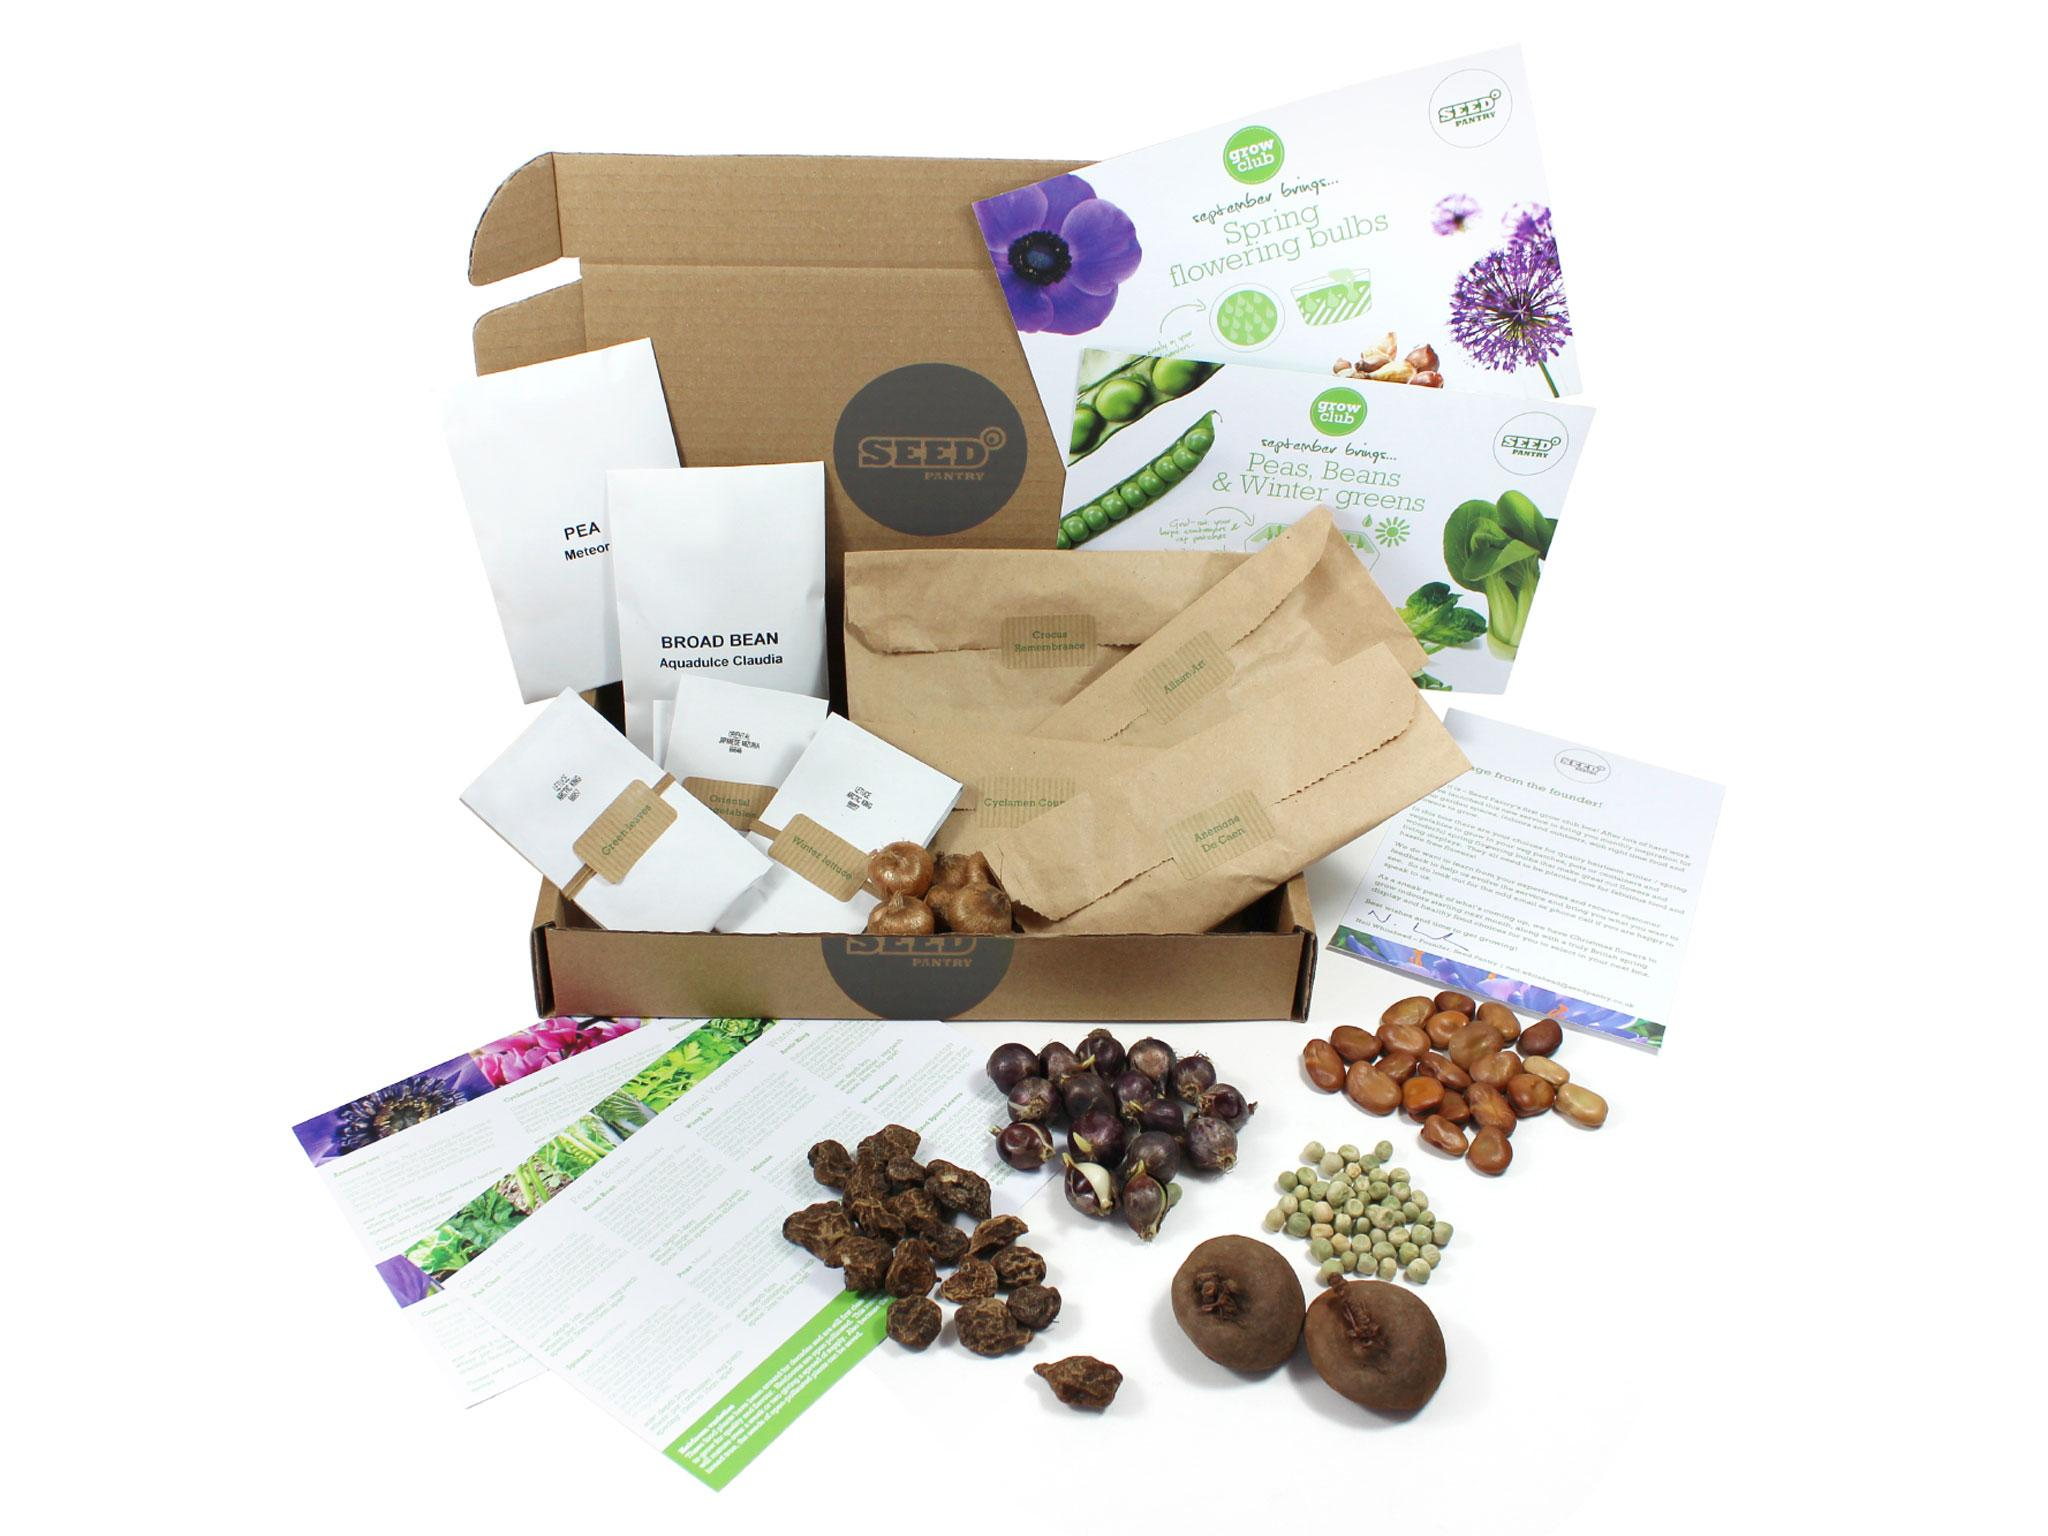 8 Best Plants And Gardening Subscription Boxes The Independent